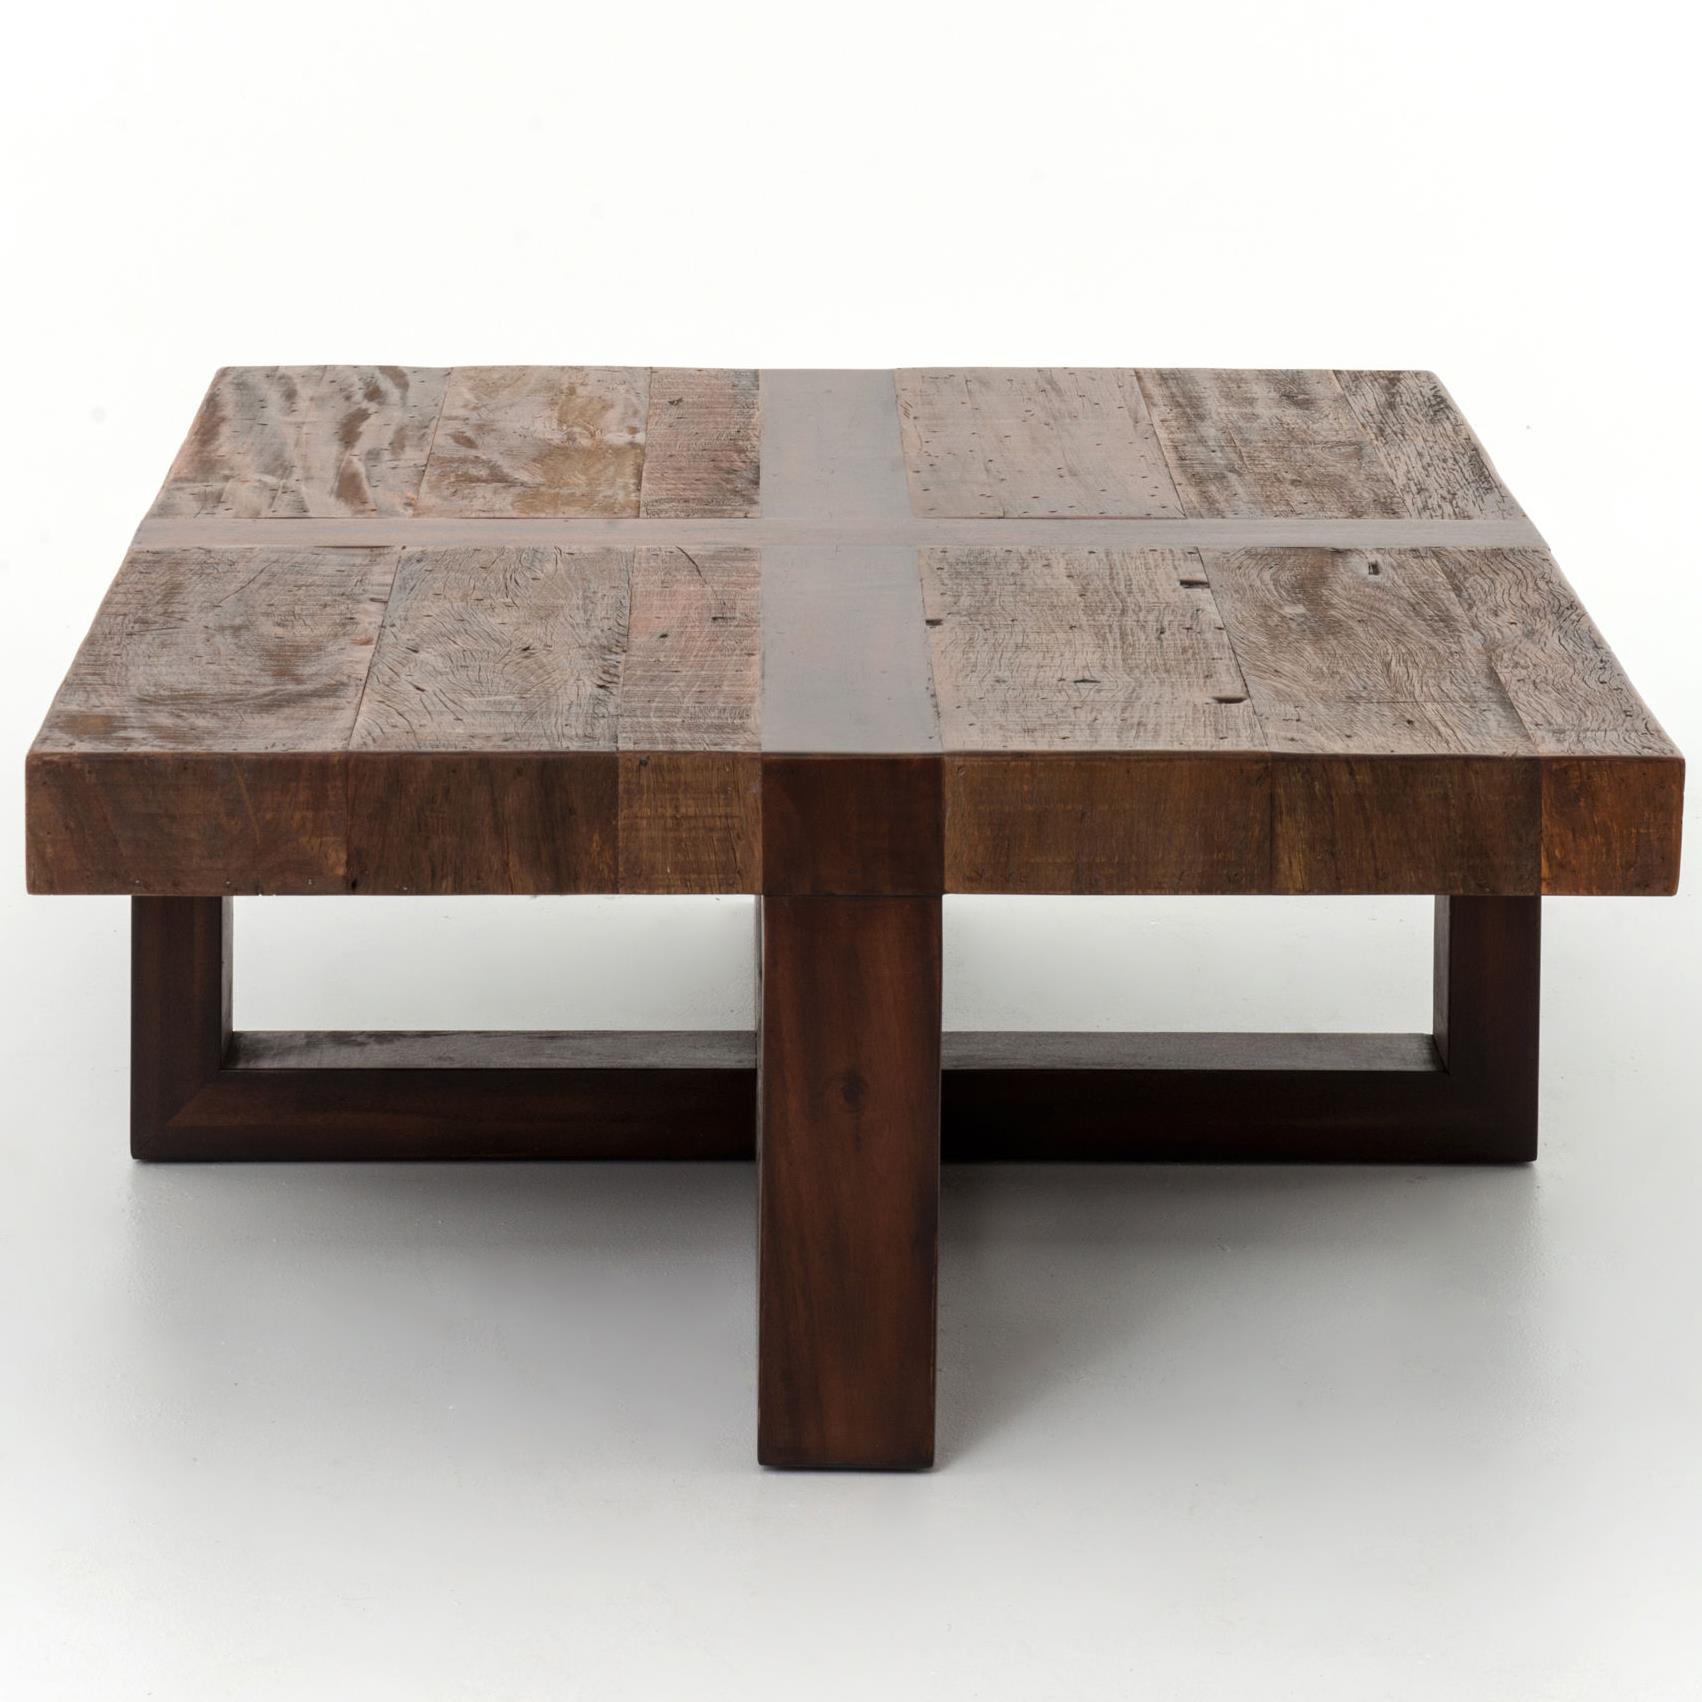 Reclaimed bryan coffee table by four hands wolf and gardiner bryan coffee table geotapseo Gallery